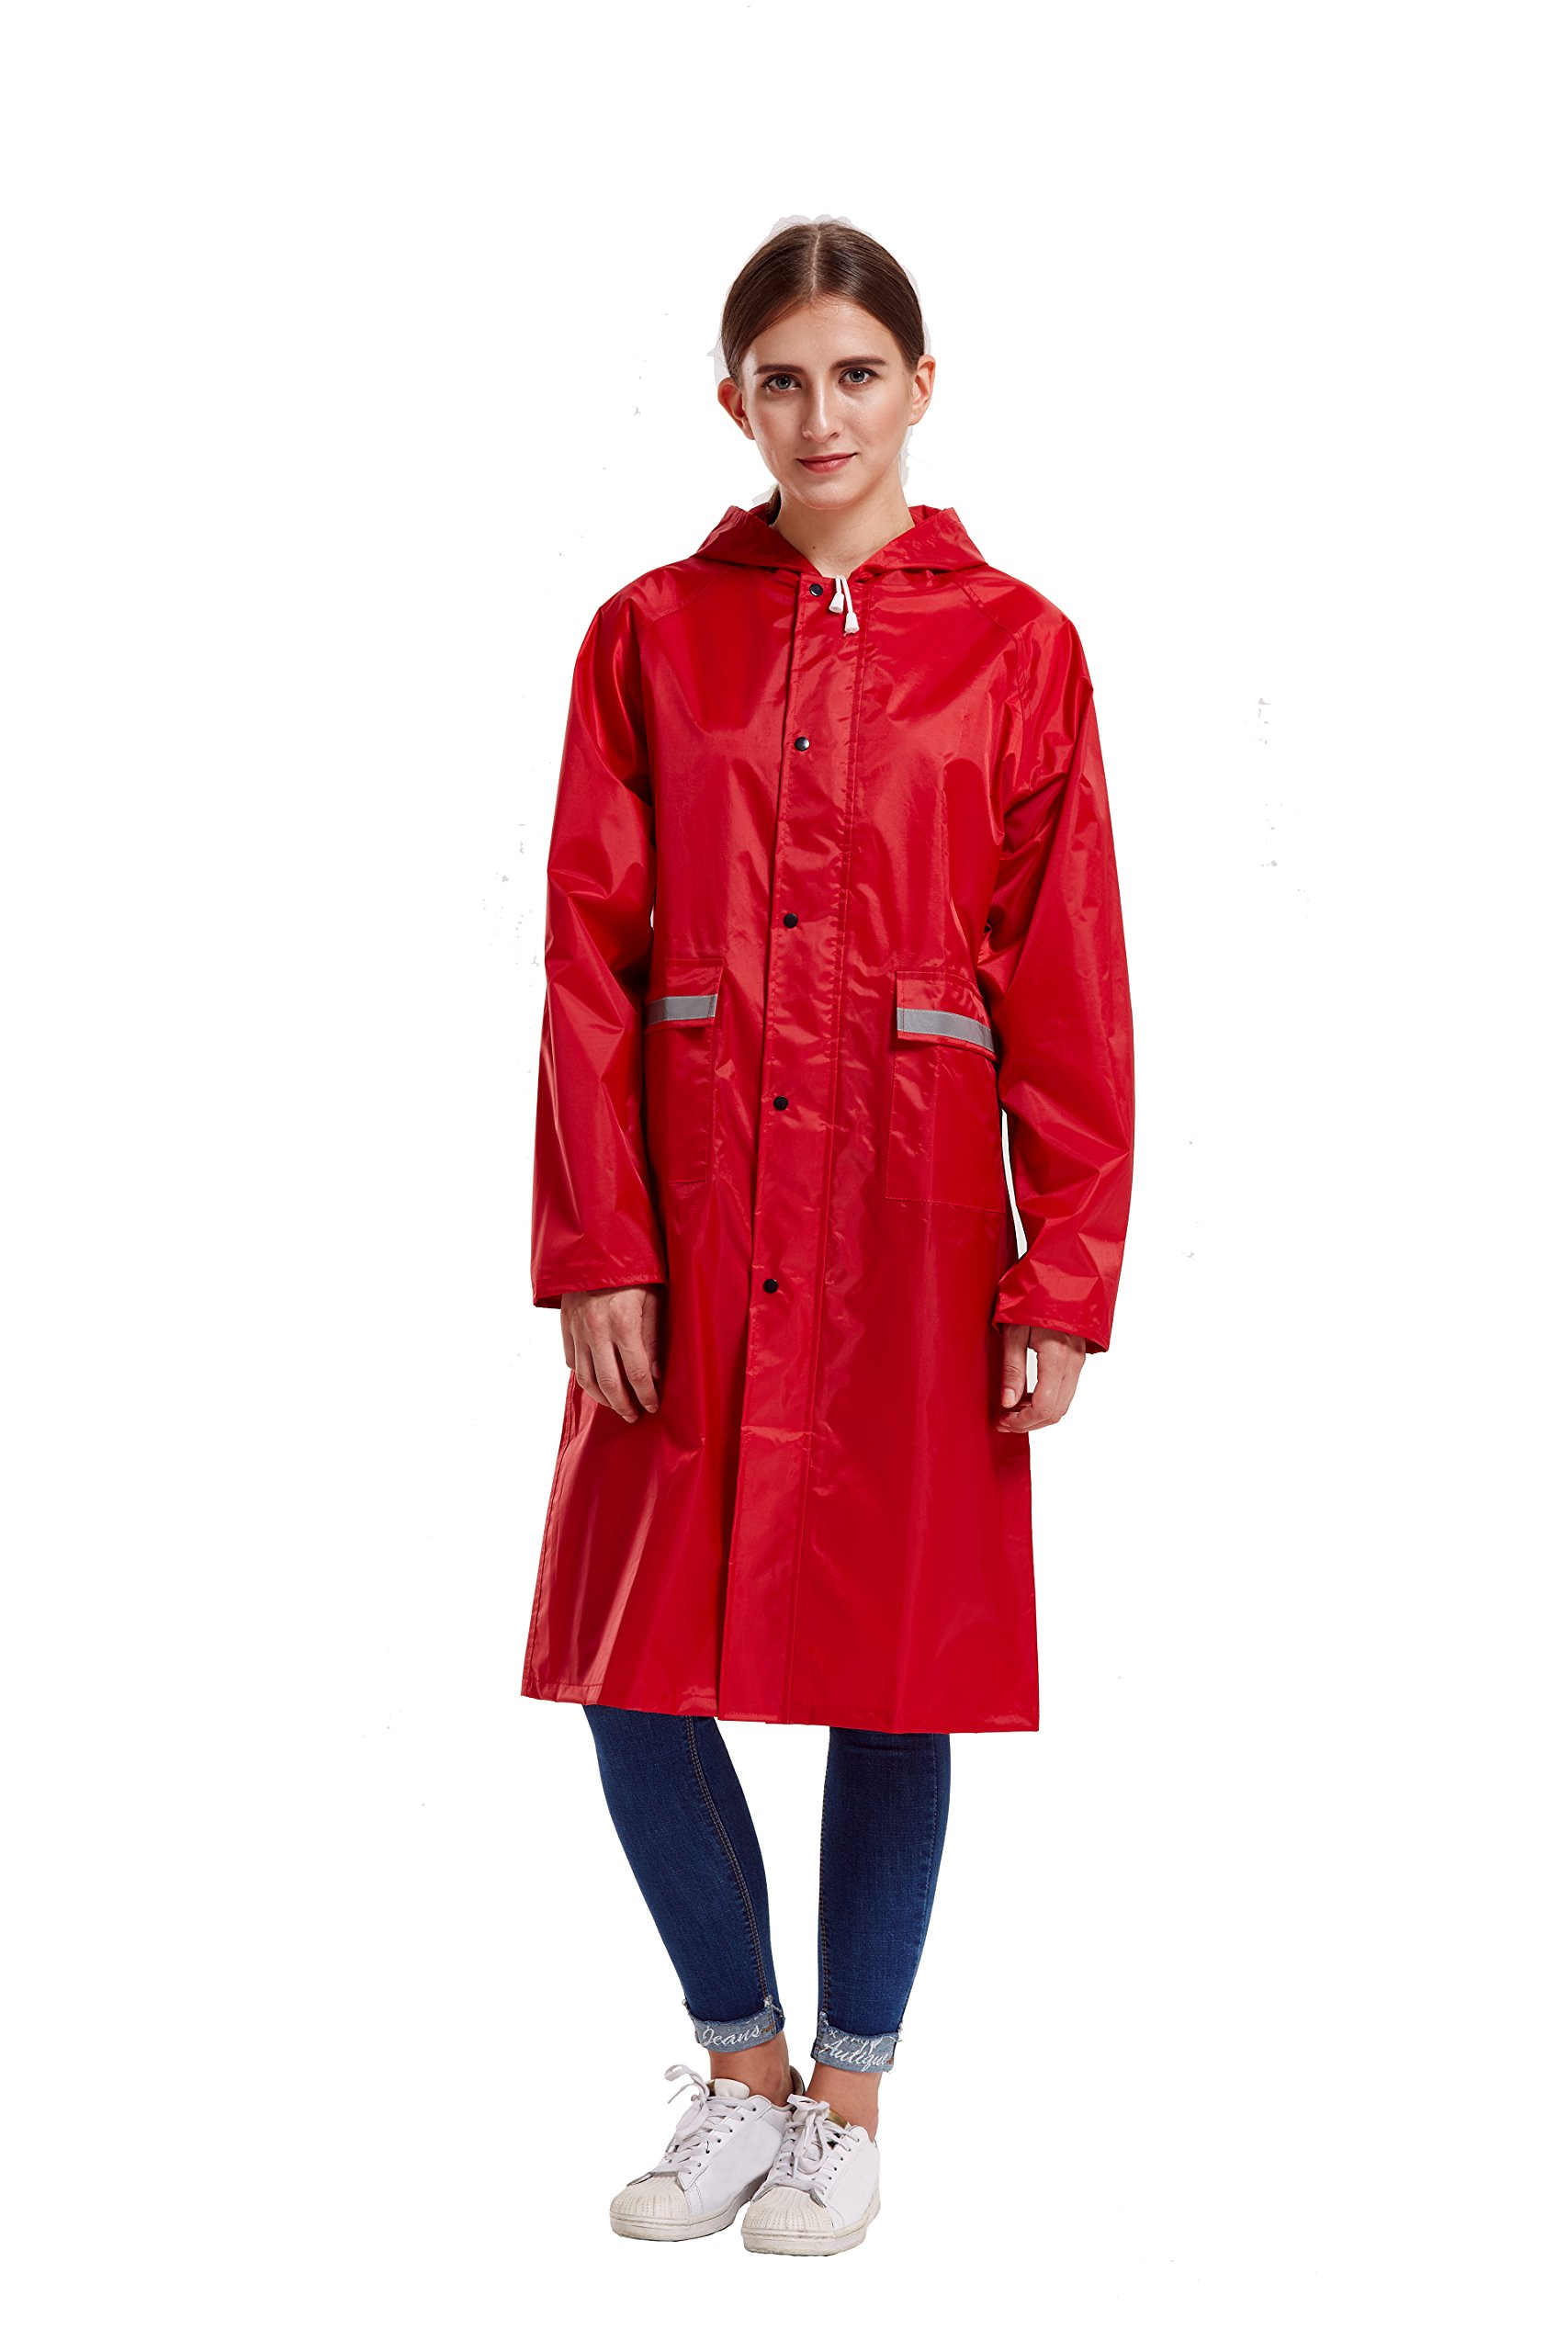 Peacoco Raincoat,Rain Ponchos for Adult Men Women,Emergency Rain Coat with Hood for Outdoor Traveling,Camping Hiking,Fishing